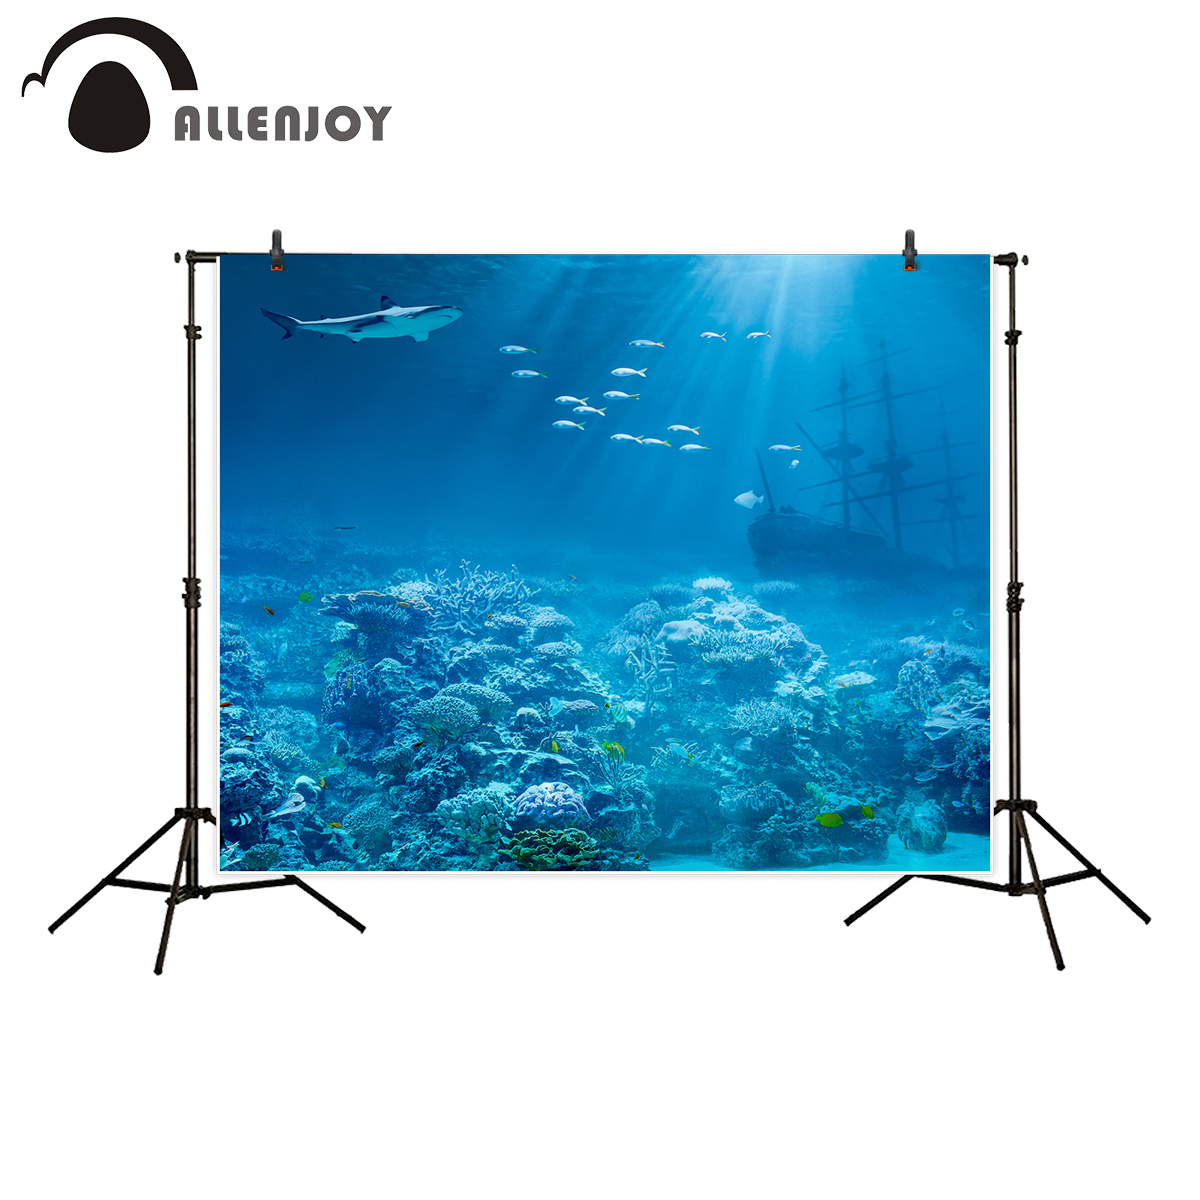 Allenjoy backdrop for photographic studio sea ocean underwater shark sunk treasures ship background professional photocall